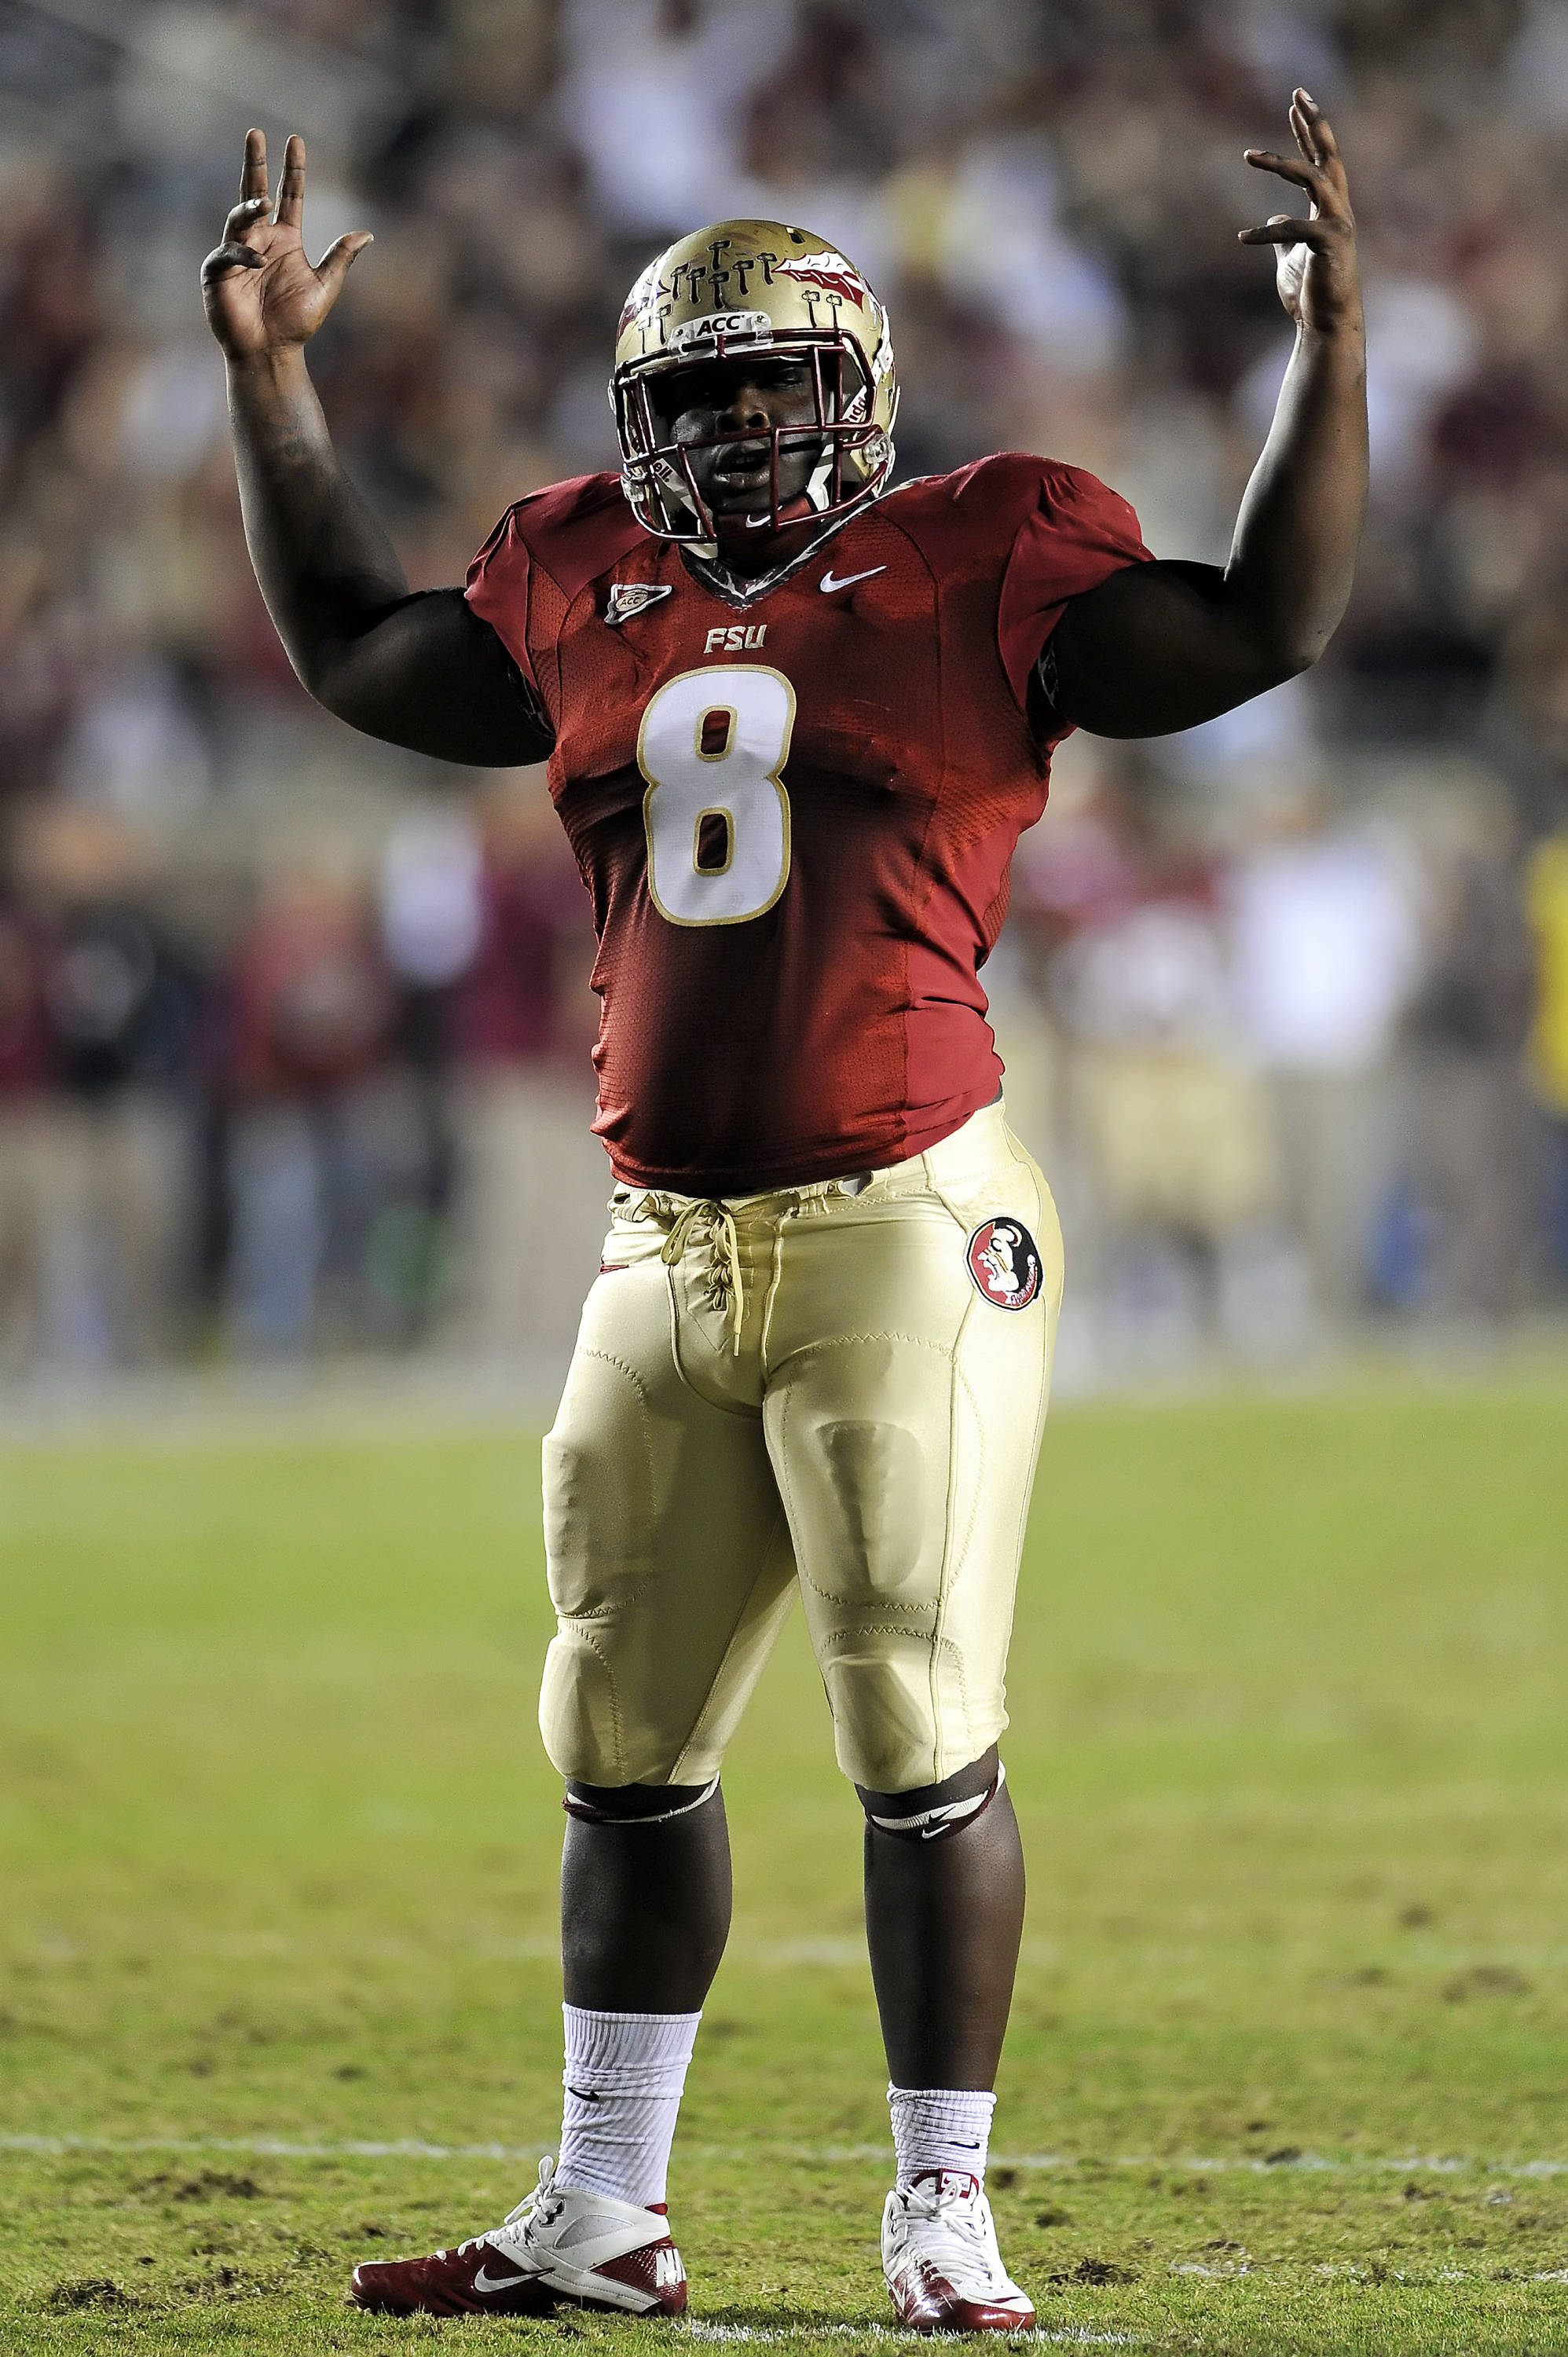 Timmy Jernigan (8) was a freshman All-American in 2011 and become a crowd favorite in Tallahassee.  He is poised for great things during the remainder of his Seminole career.